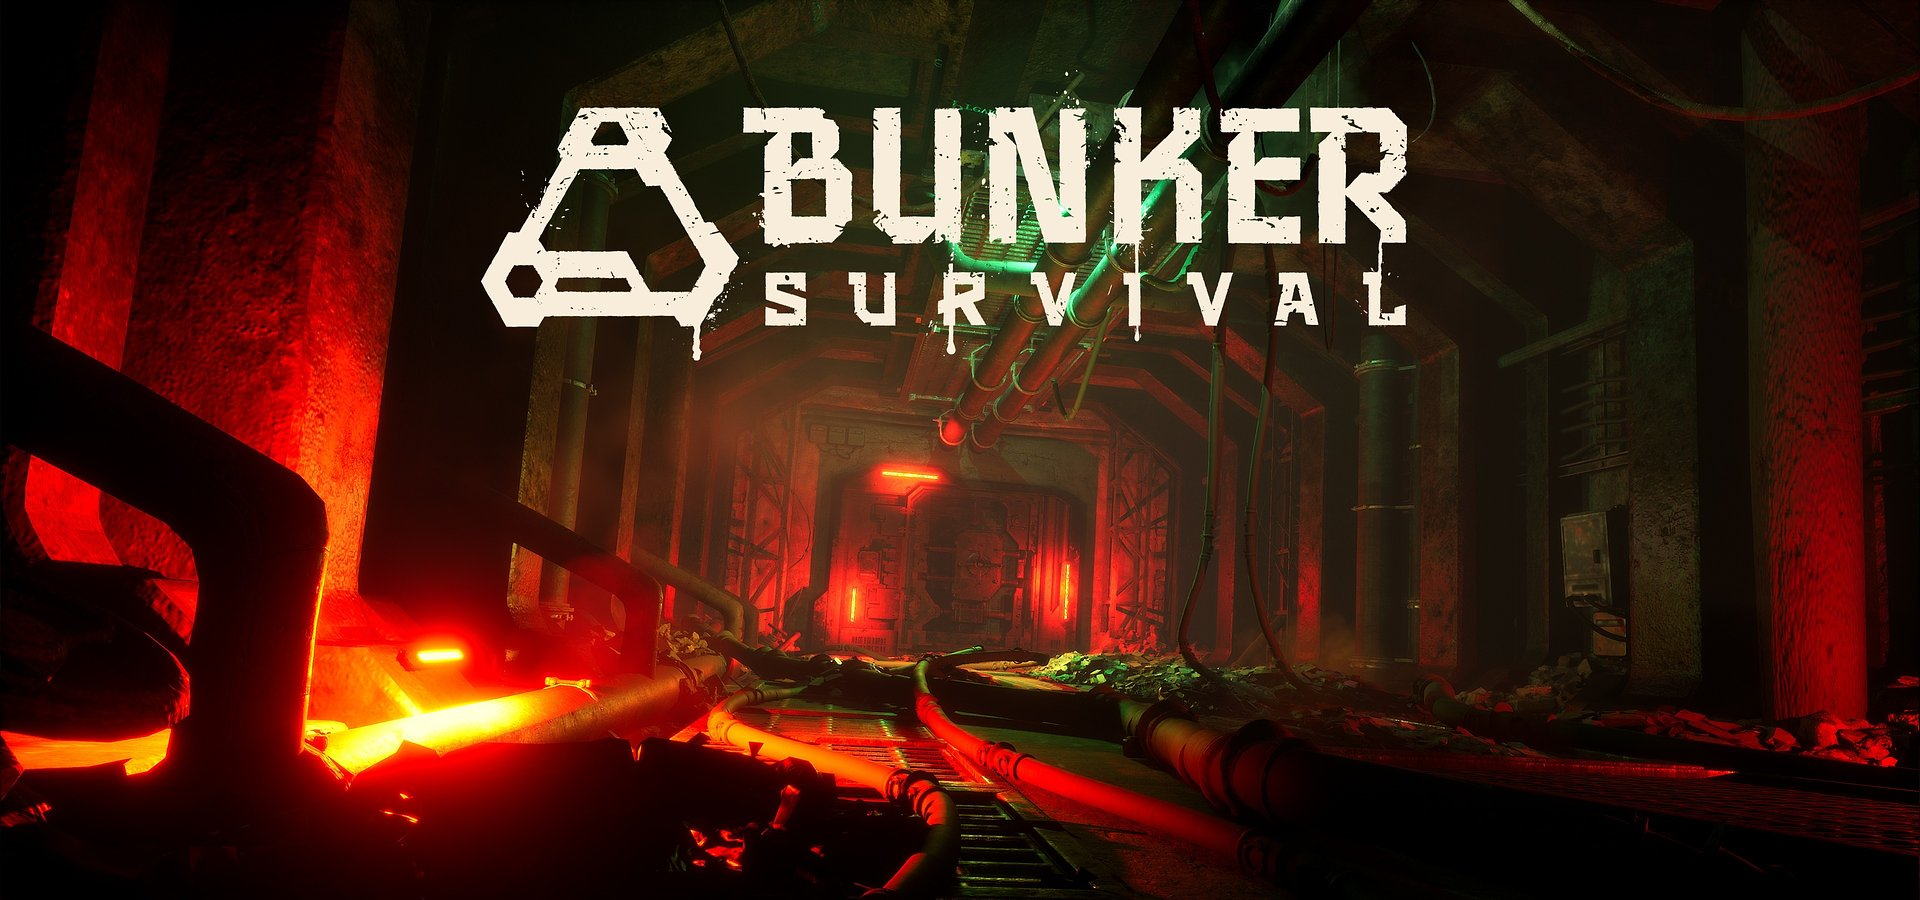 When the earth becomes contaminated, humanity finds shelter in underground bunkers. Game Island announces thair another game - Bunker Survival.